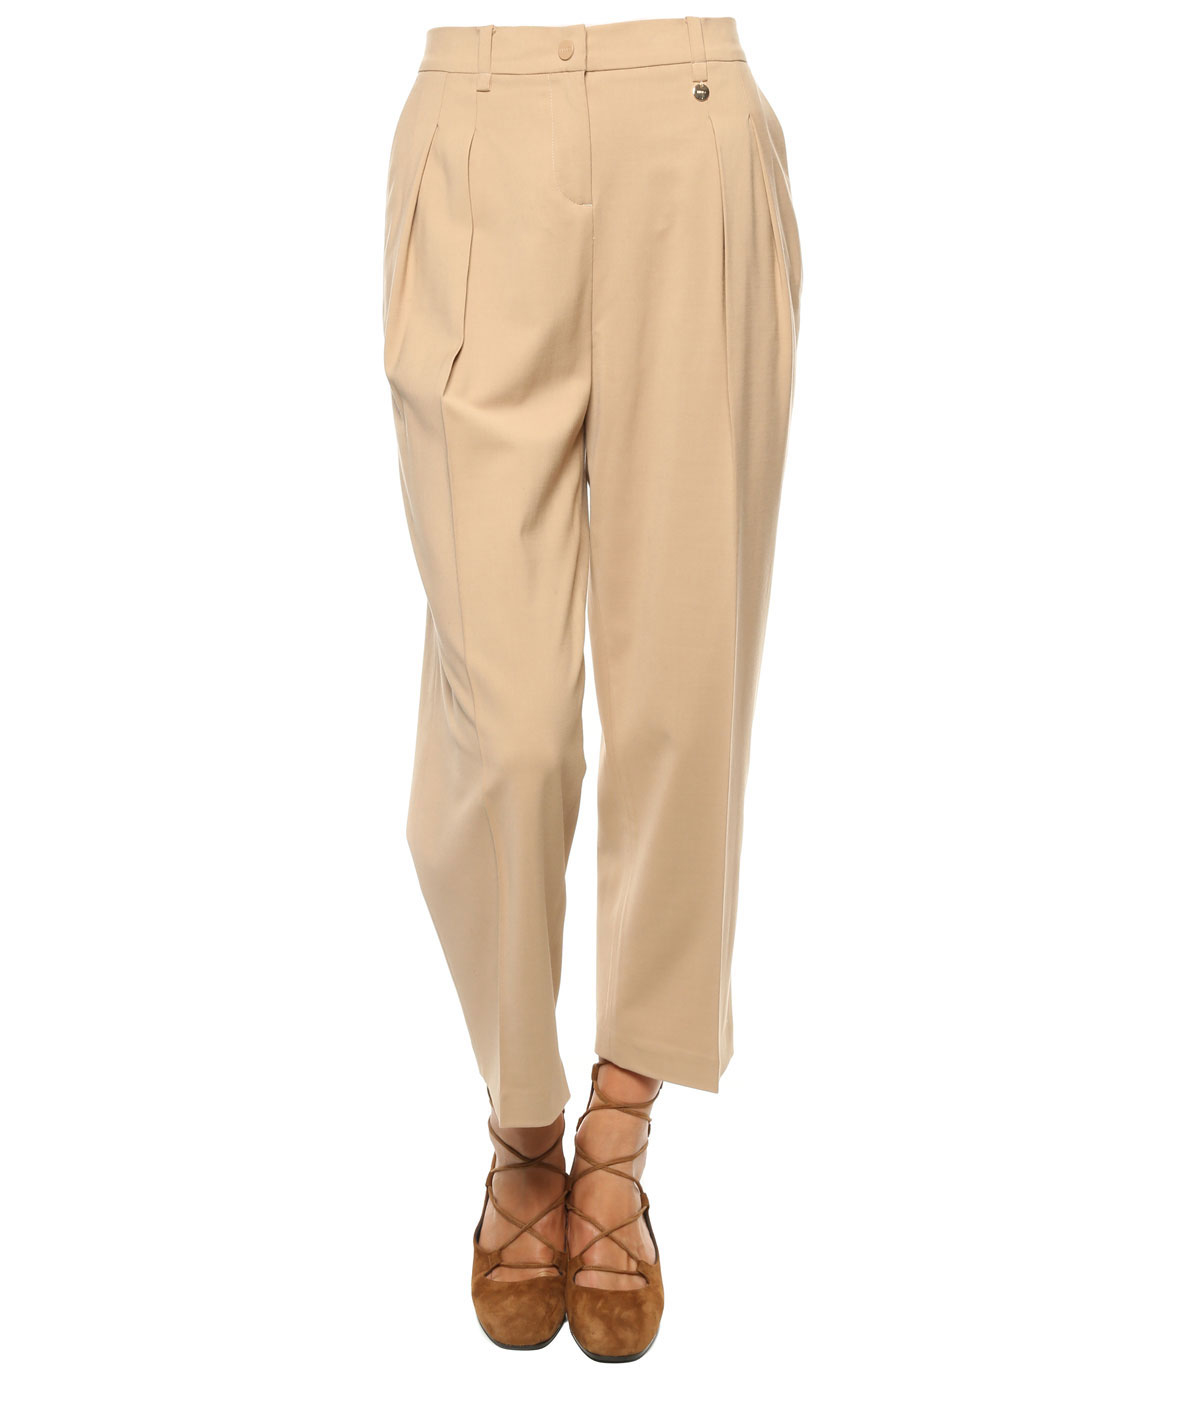 Liu jo Trousers in Natural